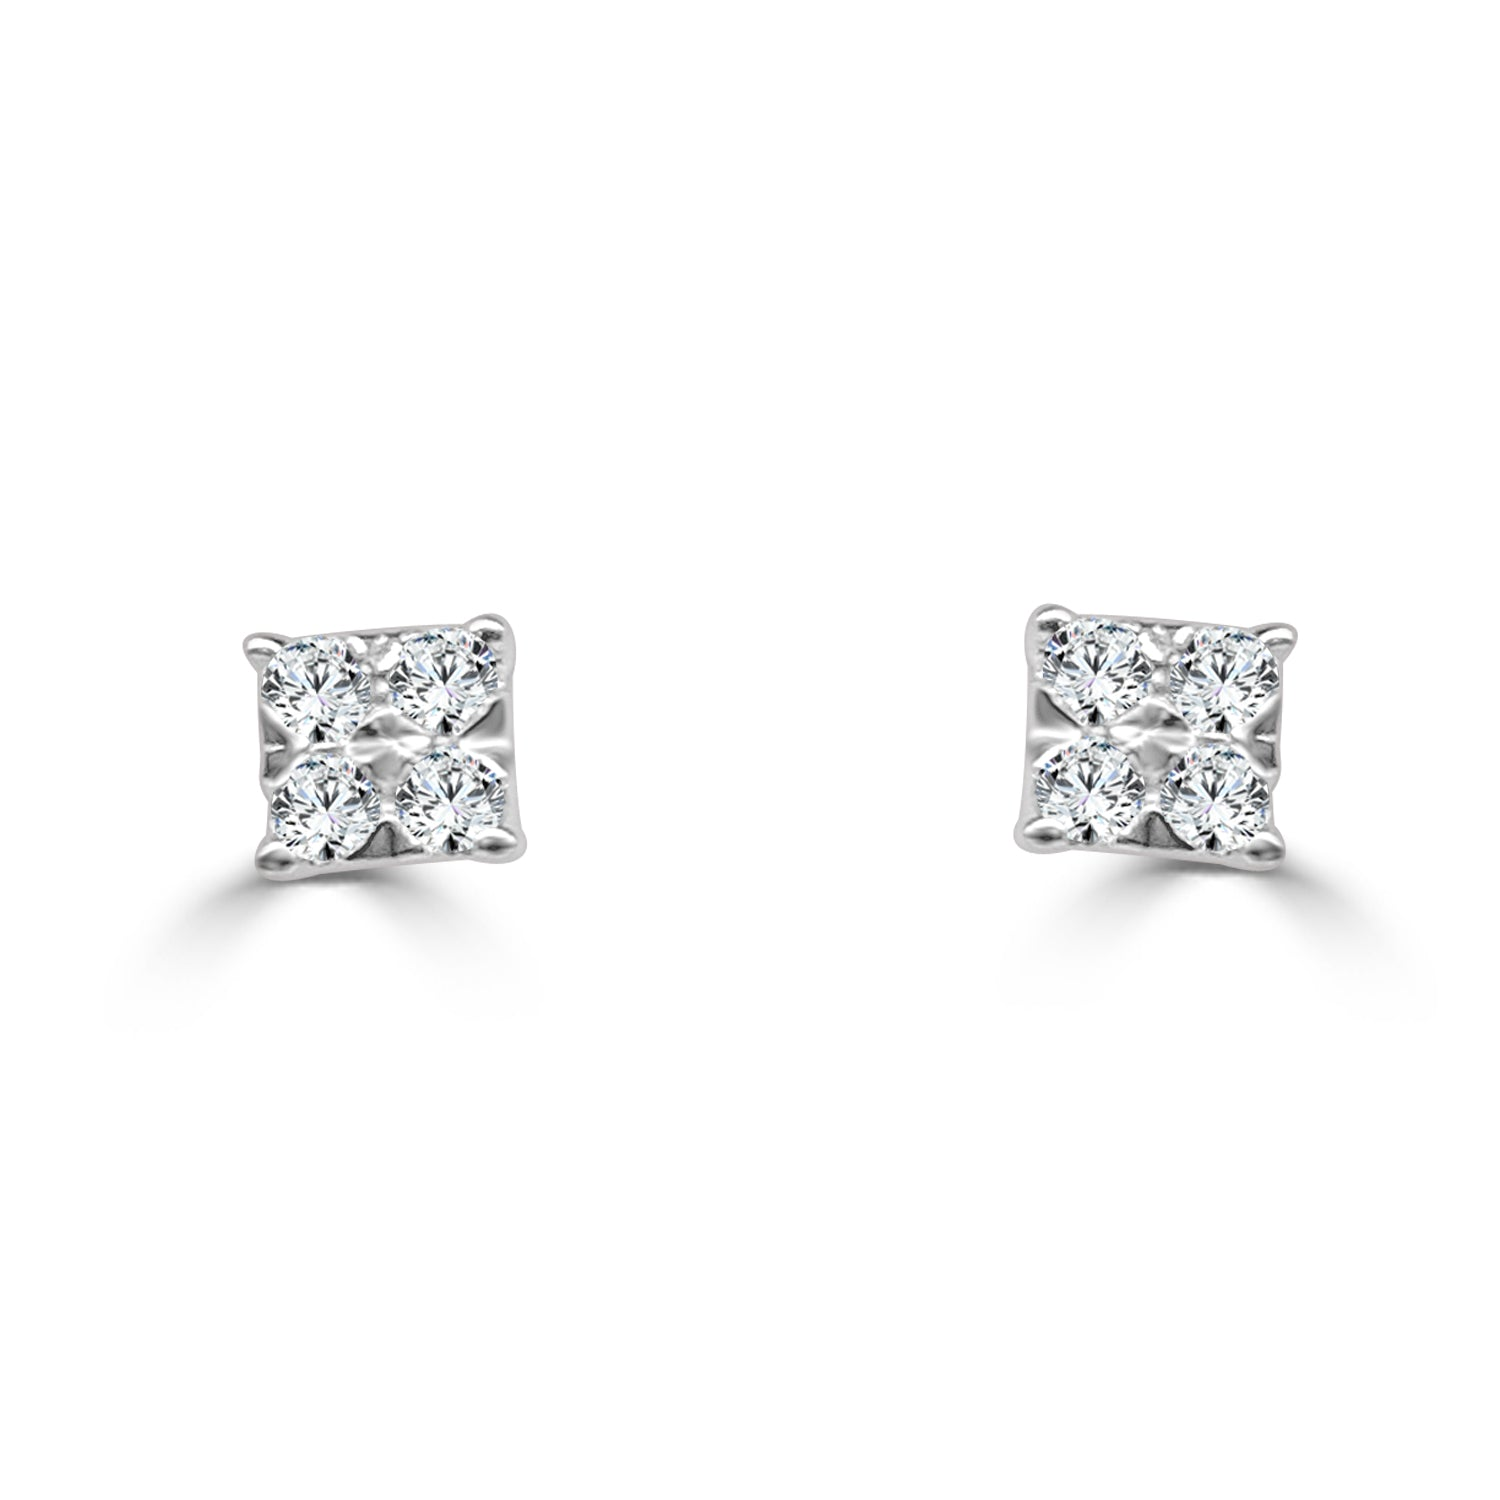 diamond k gold earrings w carat en princess miabella walmart square solitaire ip t tw cut canada stud white